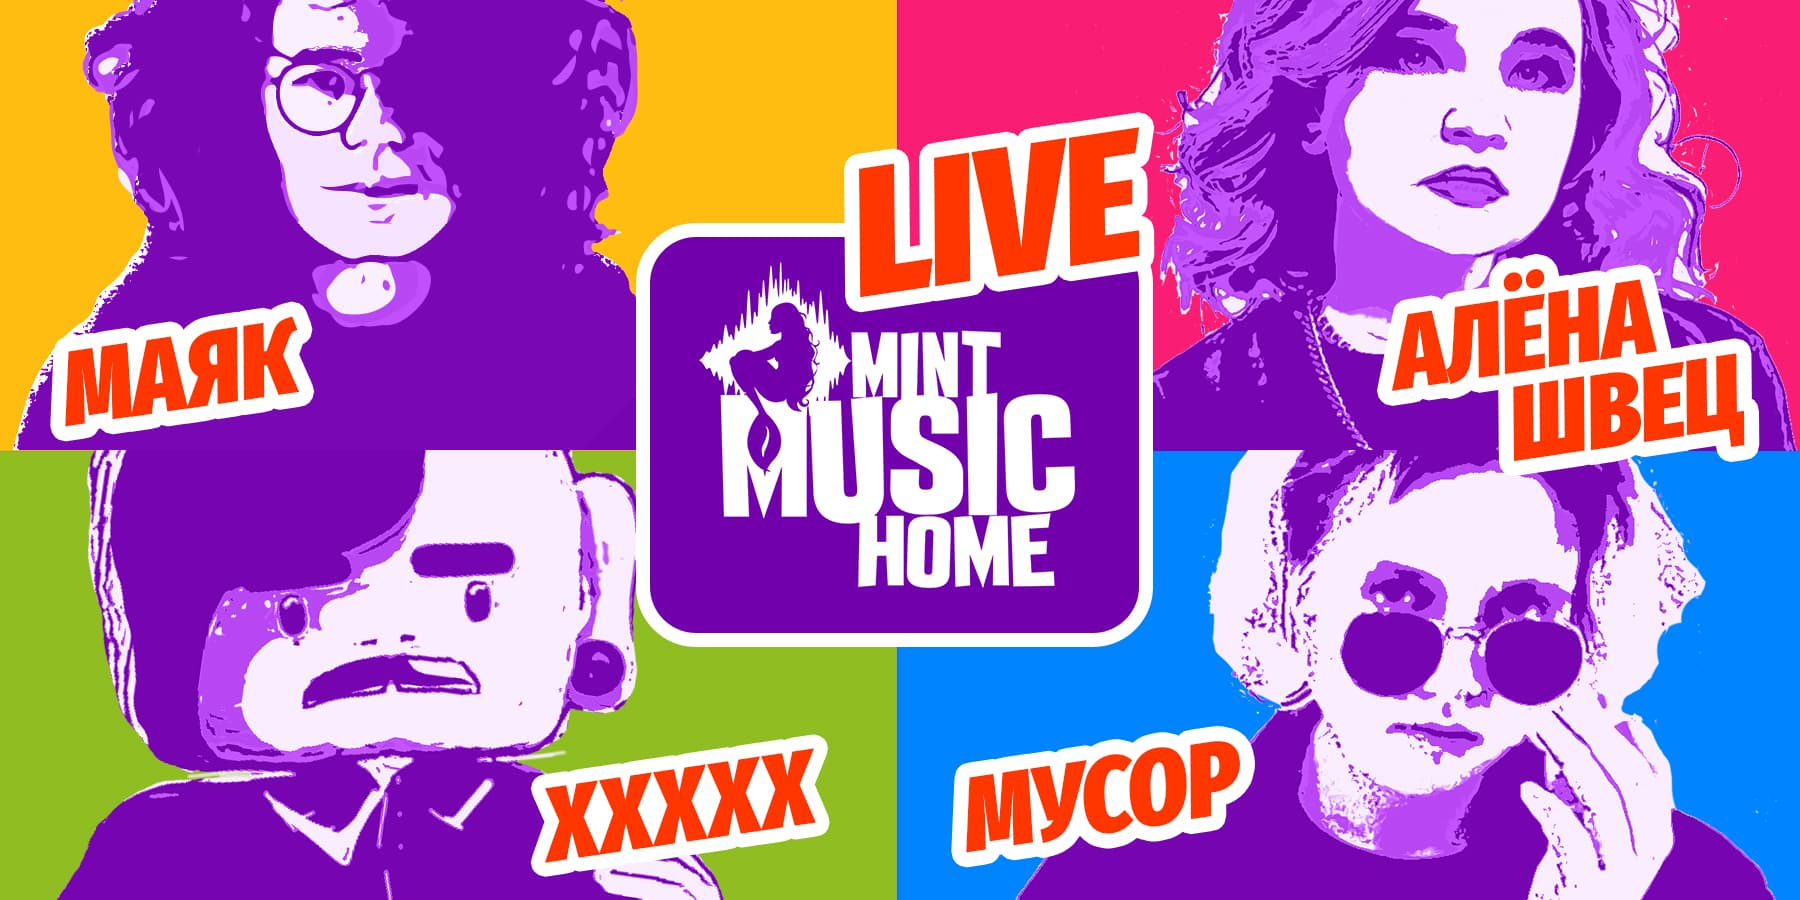 Mint Music Home Live